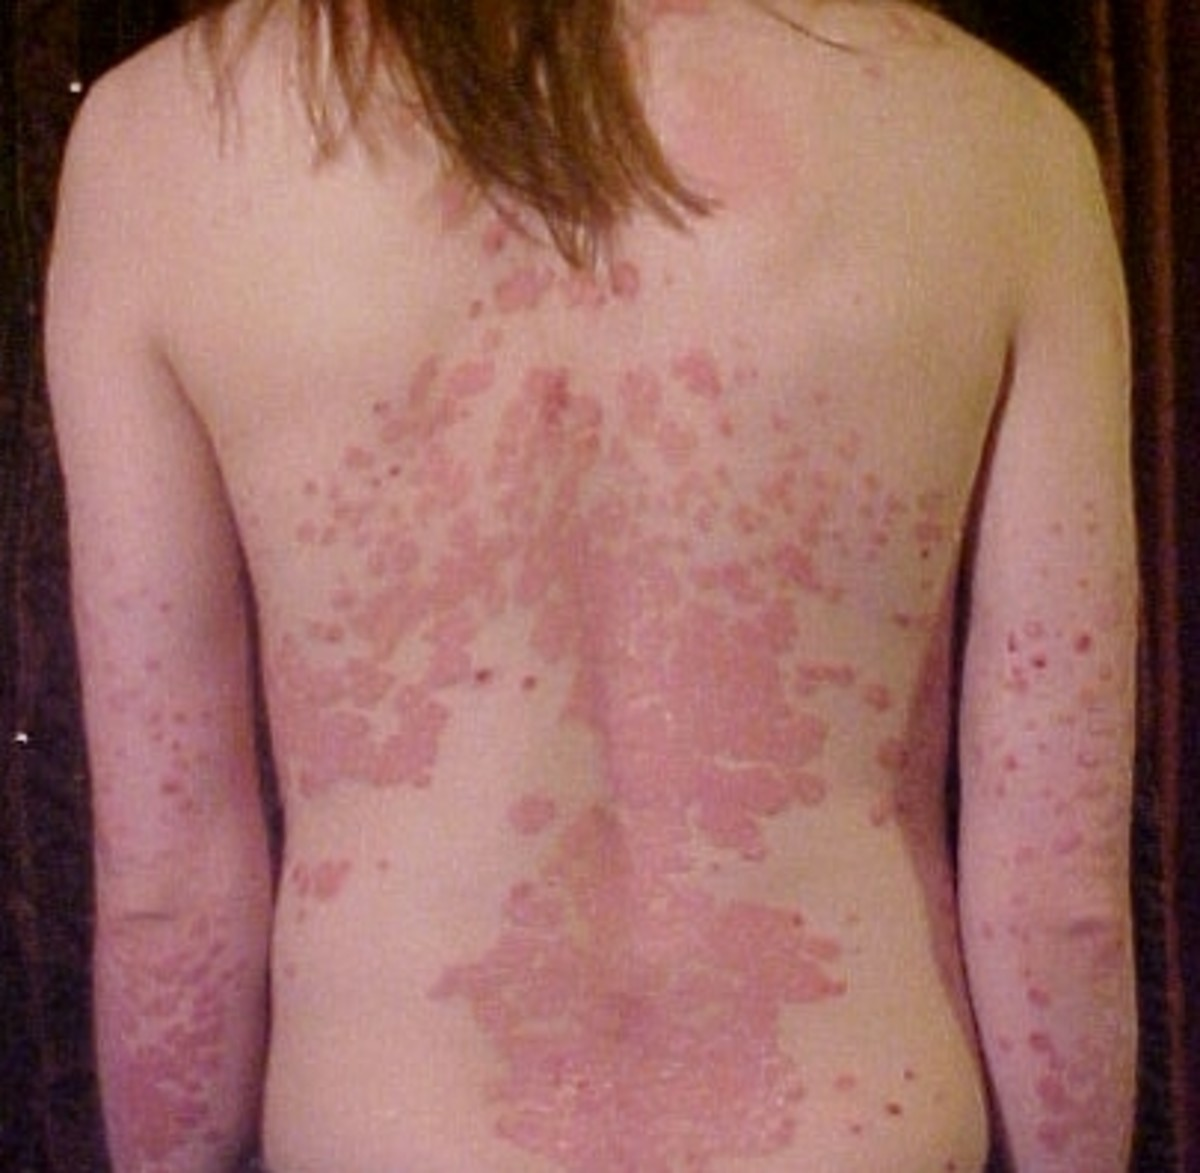 Psoriasis affecting the back